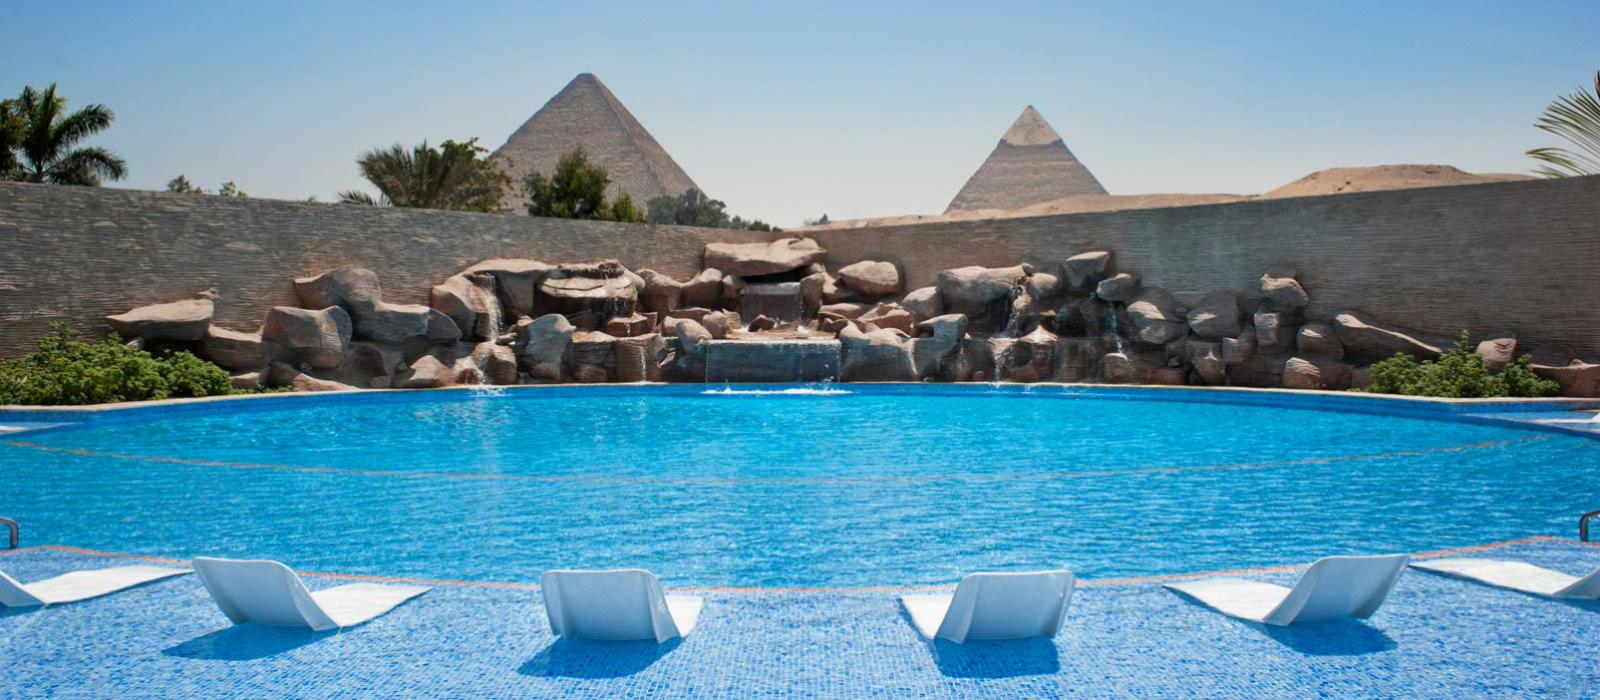 Best Hotel Interior Egypt 2013 &  Africa 2013 | Le Meridien Pyramids Hotel & Spa